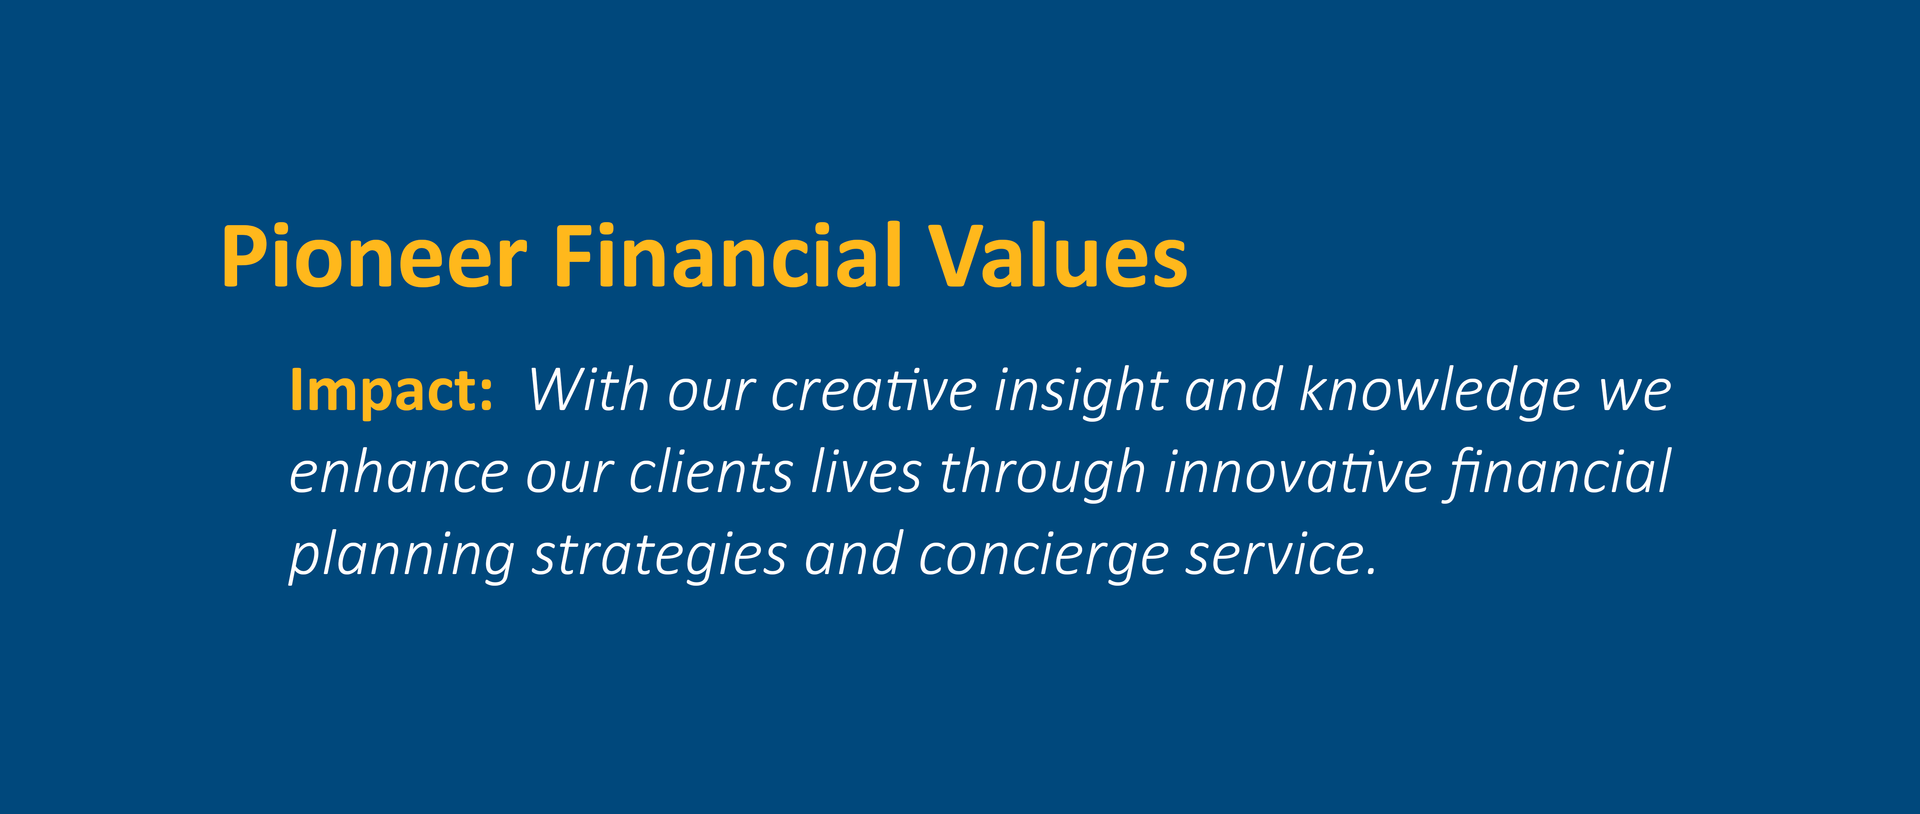 Impact:  With our creative insight and knowledge we enhance our clients lives through innovative financial planning strategies and concierge service.